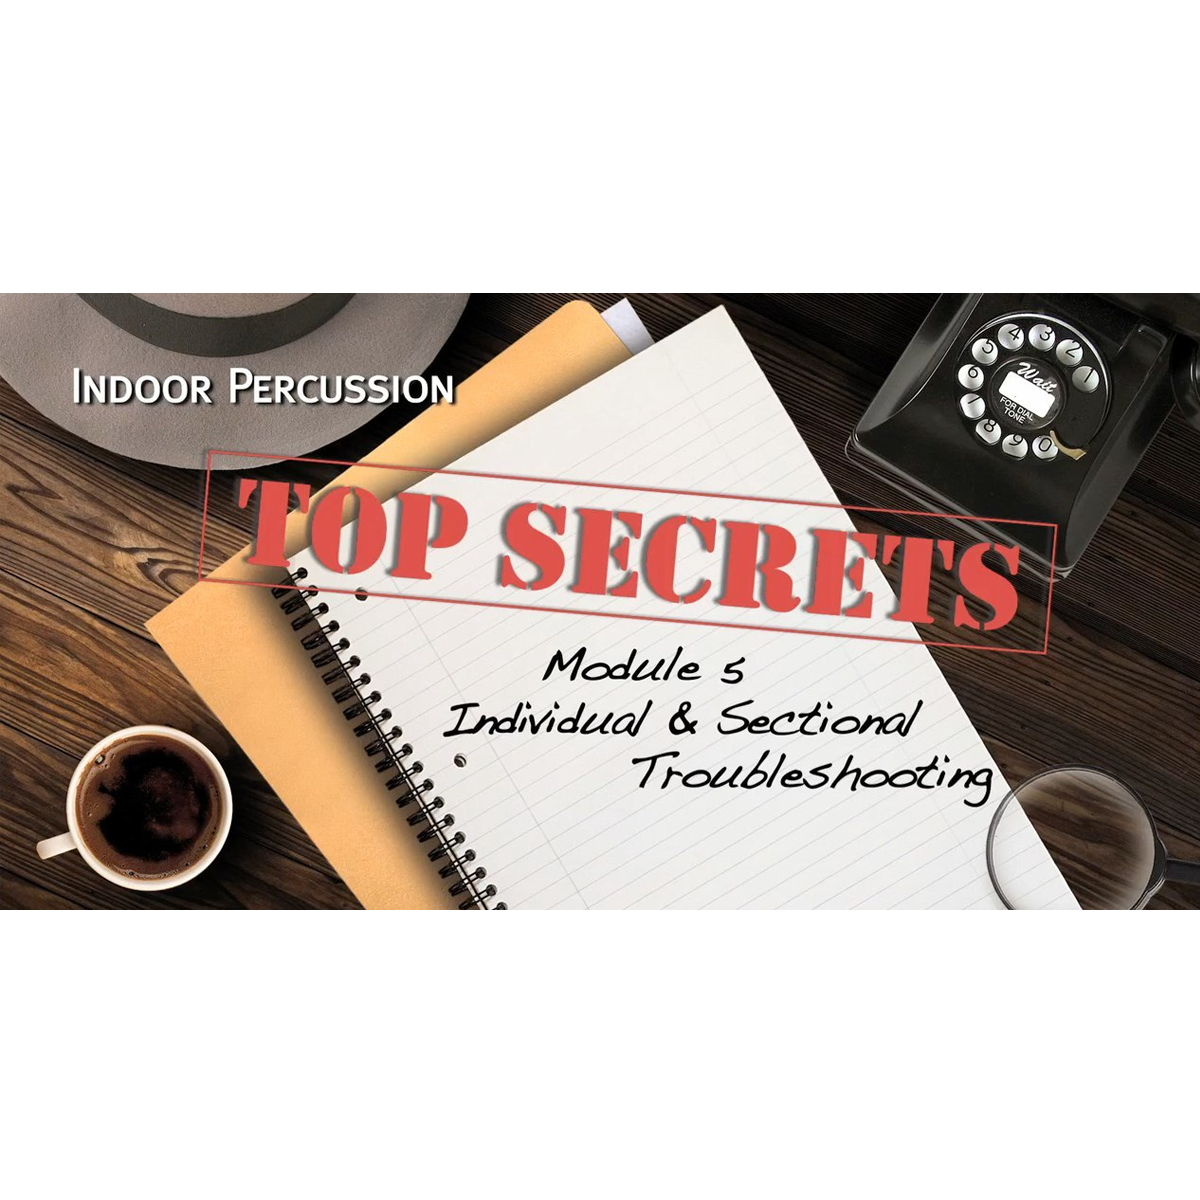 WGI Indoor Percussion Top Secrets Module 5 - Individual & Sectional Troubleshooting